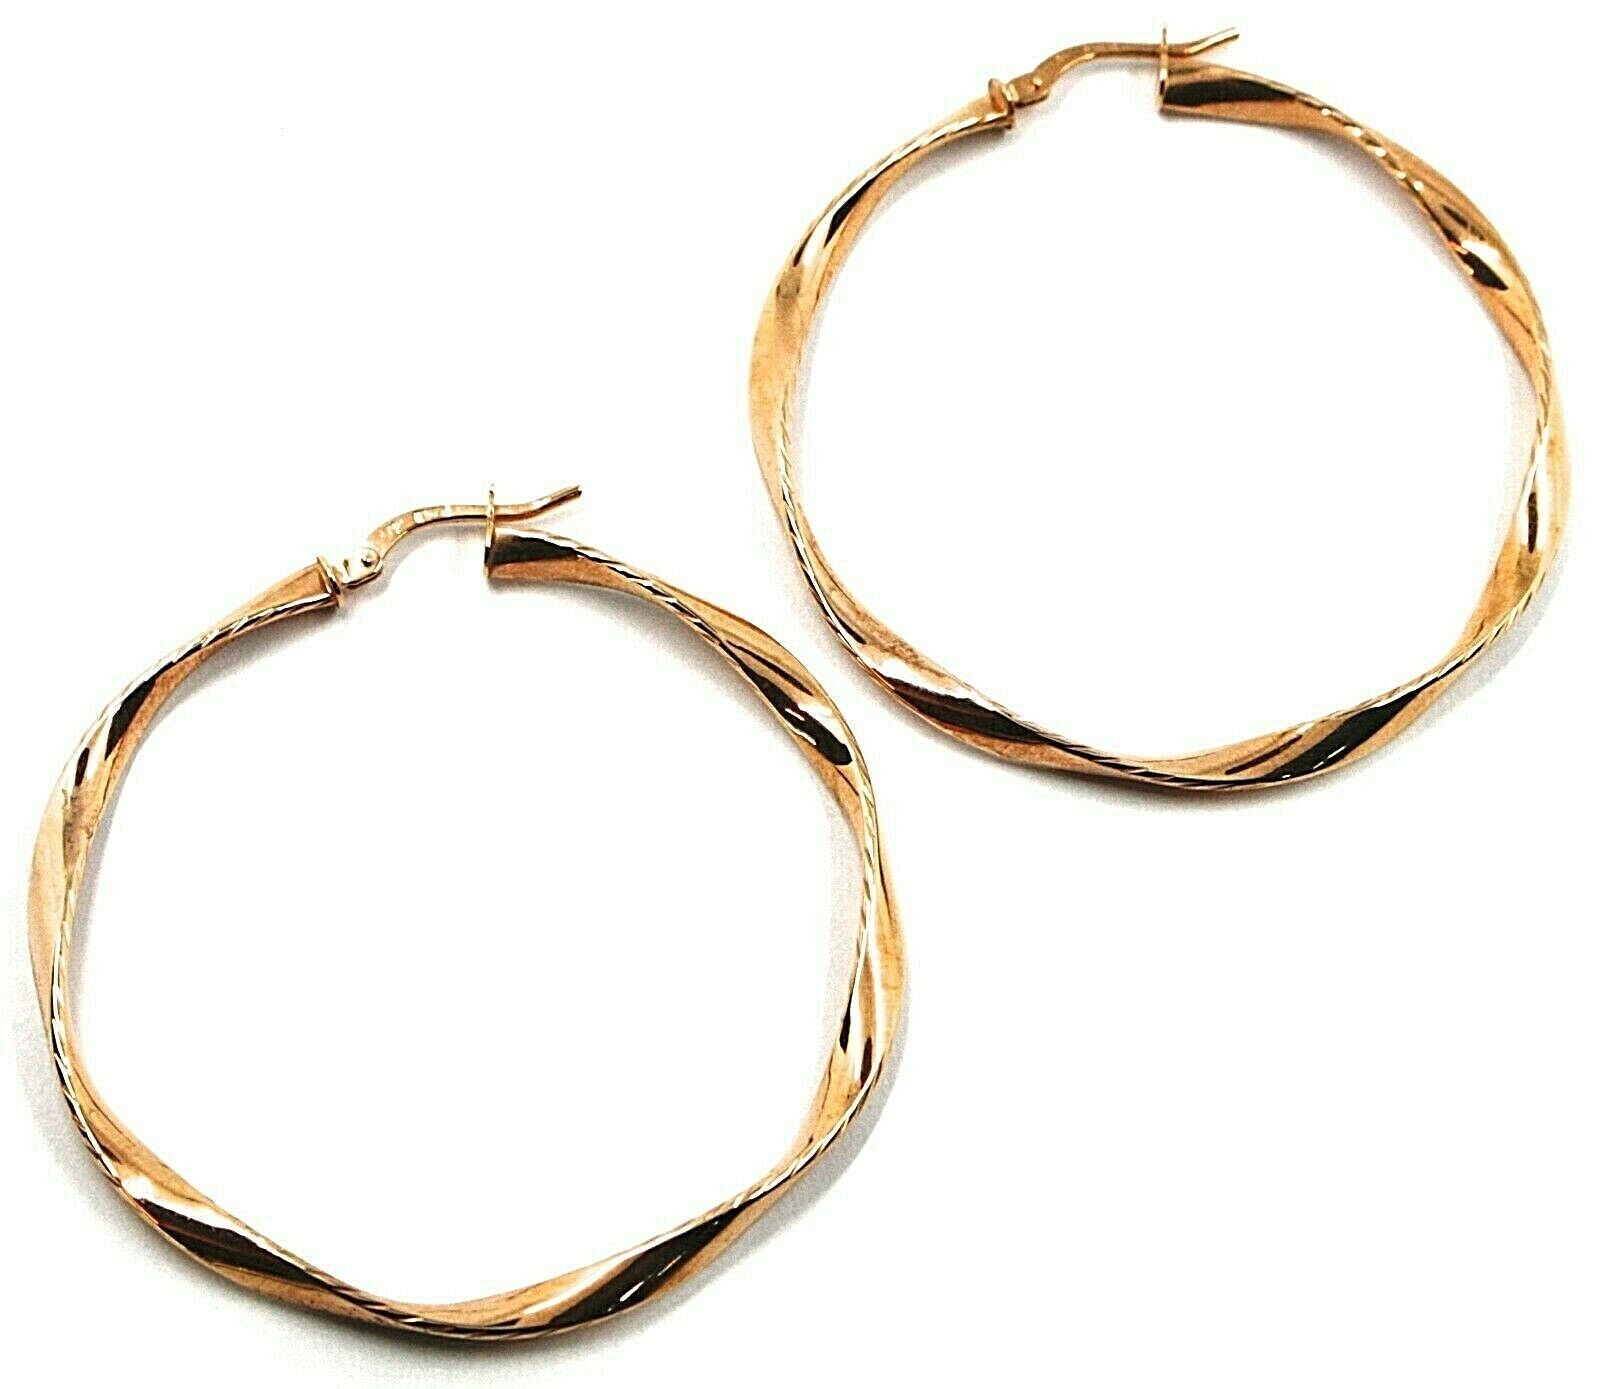 18K ROSE GOLD CIRCLE HOOPS PENDANT EARRINGS, 4.7 cm x 3.5 mm WORKED & TWISTED